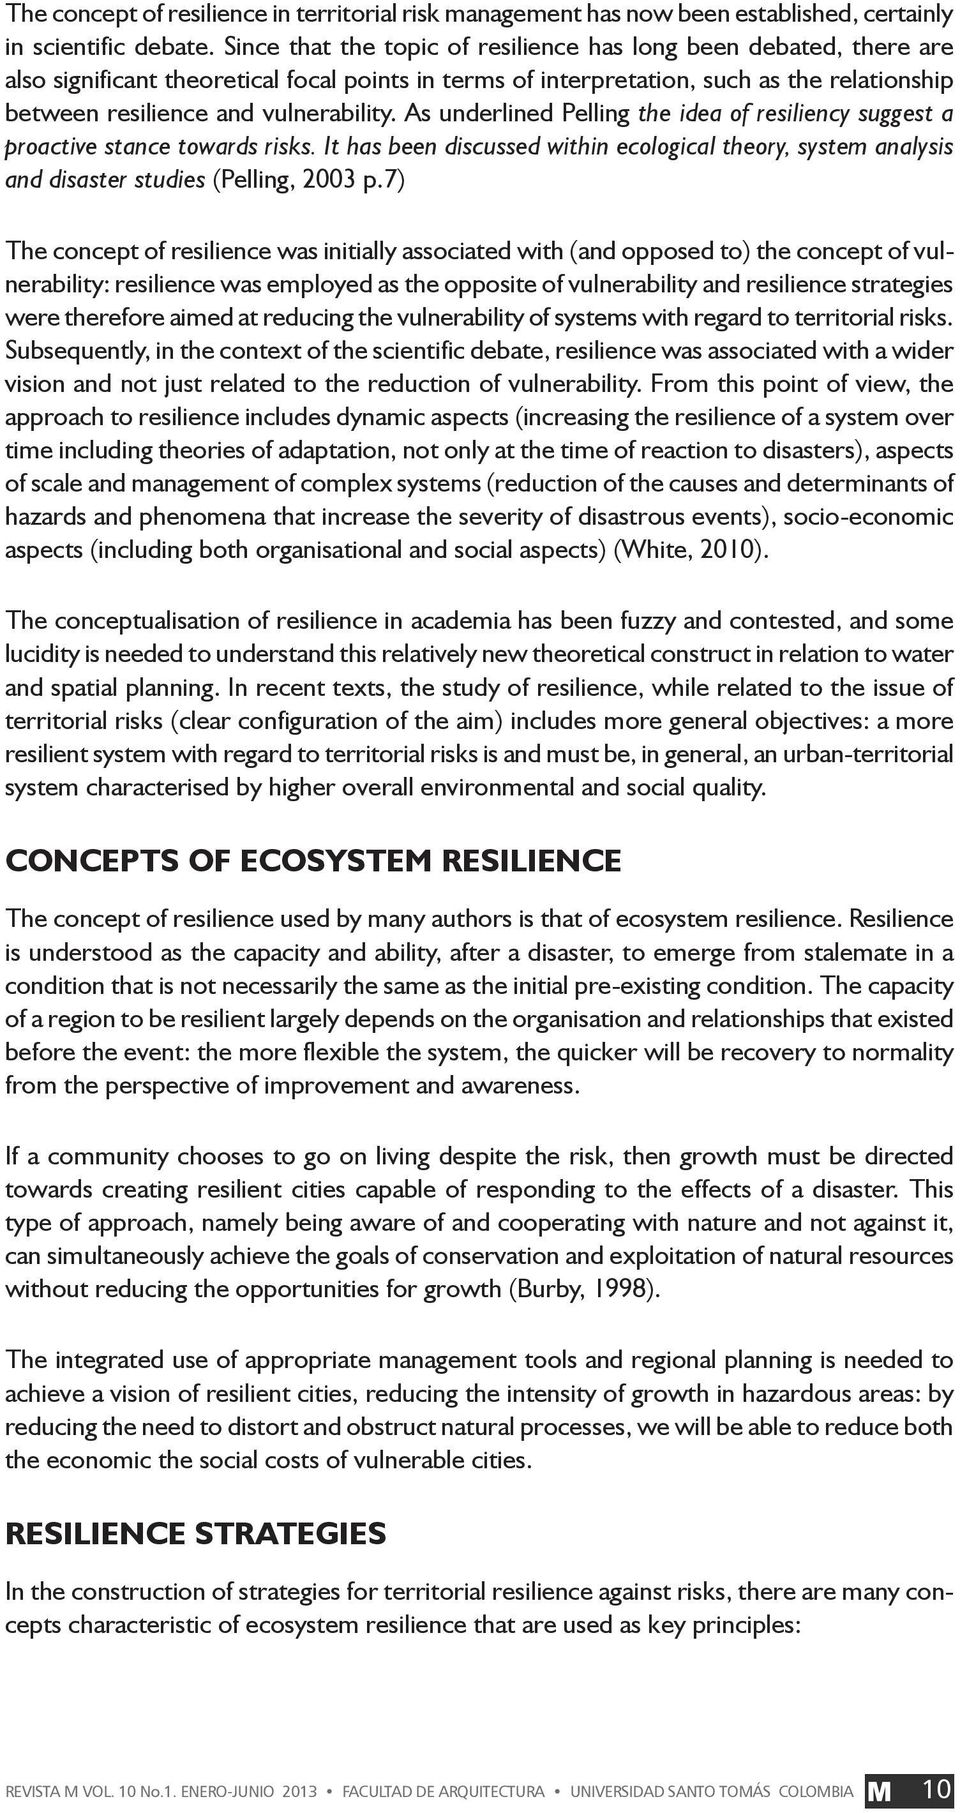 As underlined Pelling the idea of resiliency suggest a proactive stance towards risks. It has been discussed within ecological theory, system analysis and disaster studies (Pelling, 2003 p.